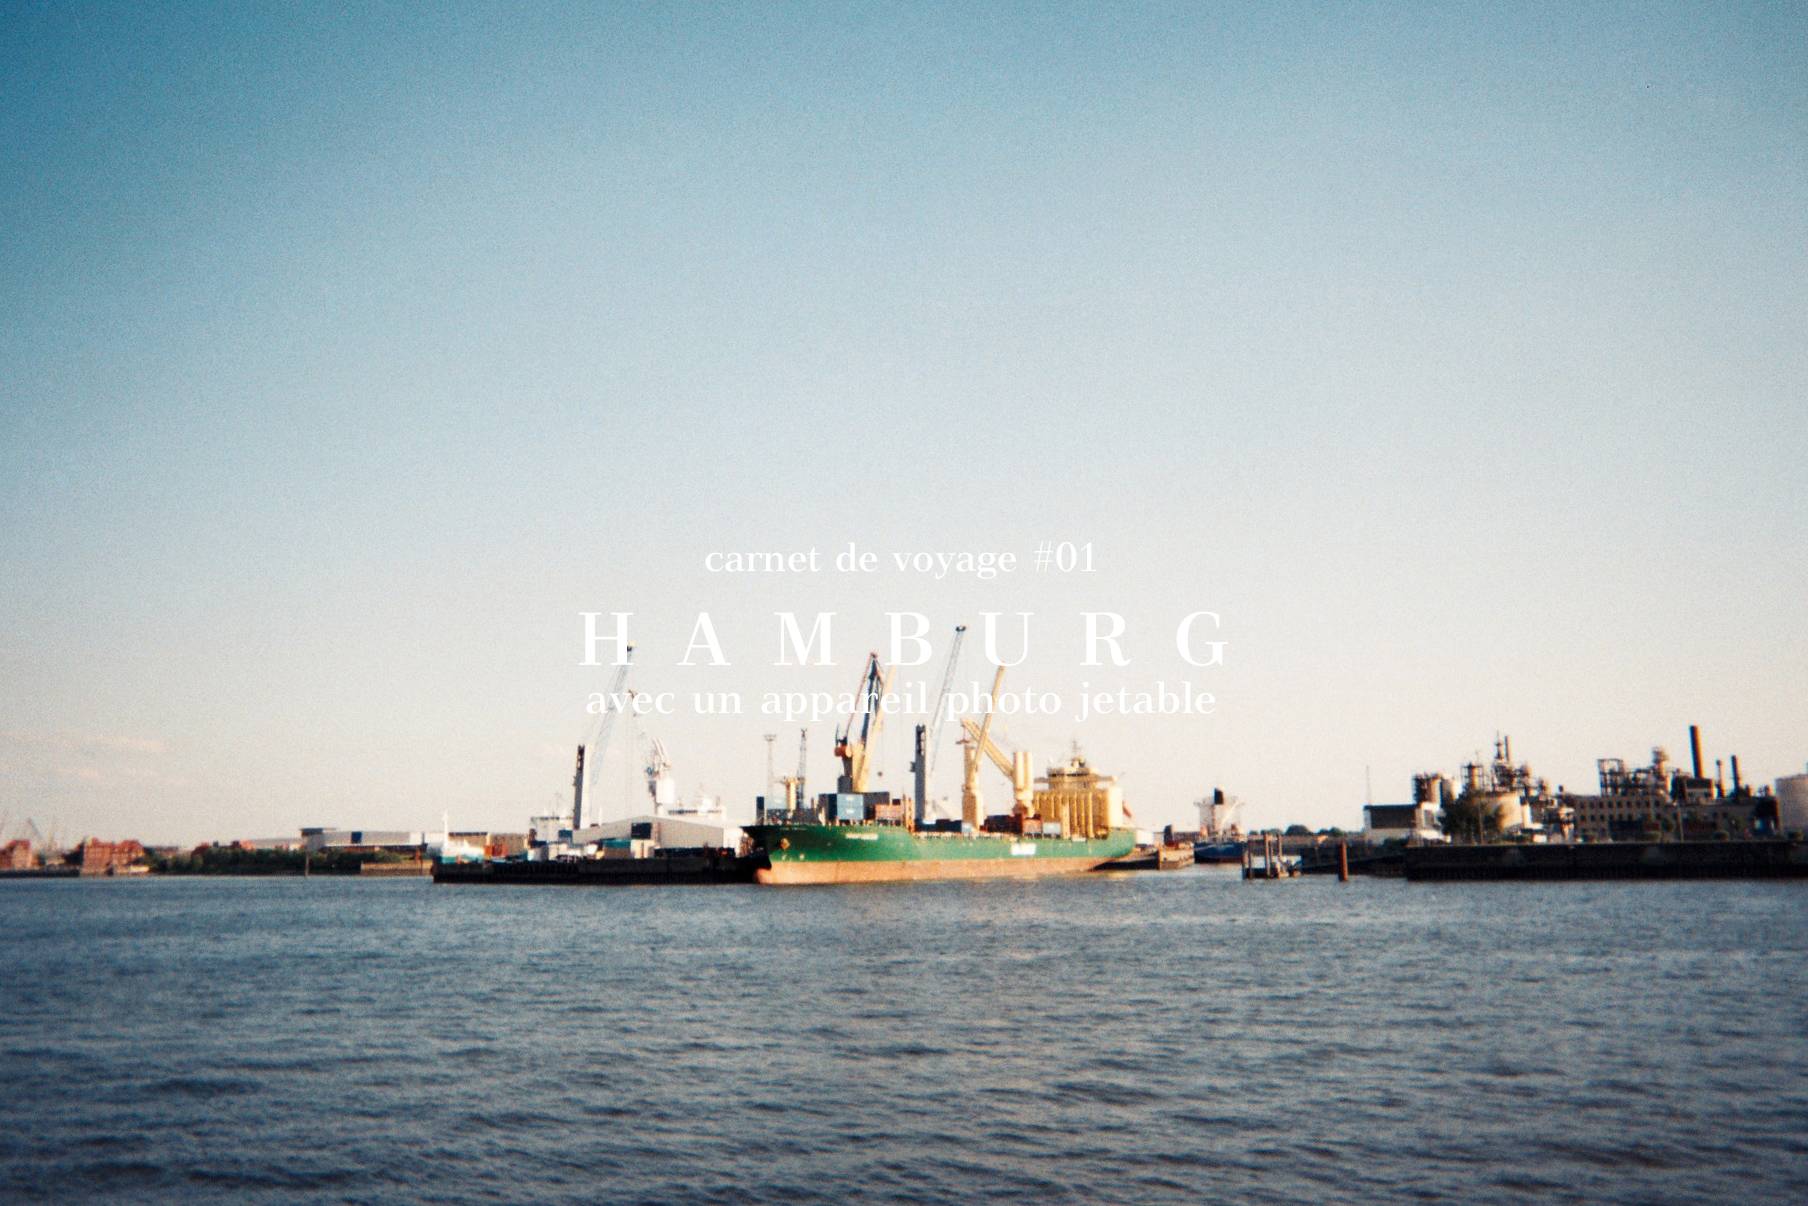 carnet-voyage-travel-hamburg-appareil-photo-jetable-by-le-polyedre VISUEL